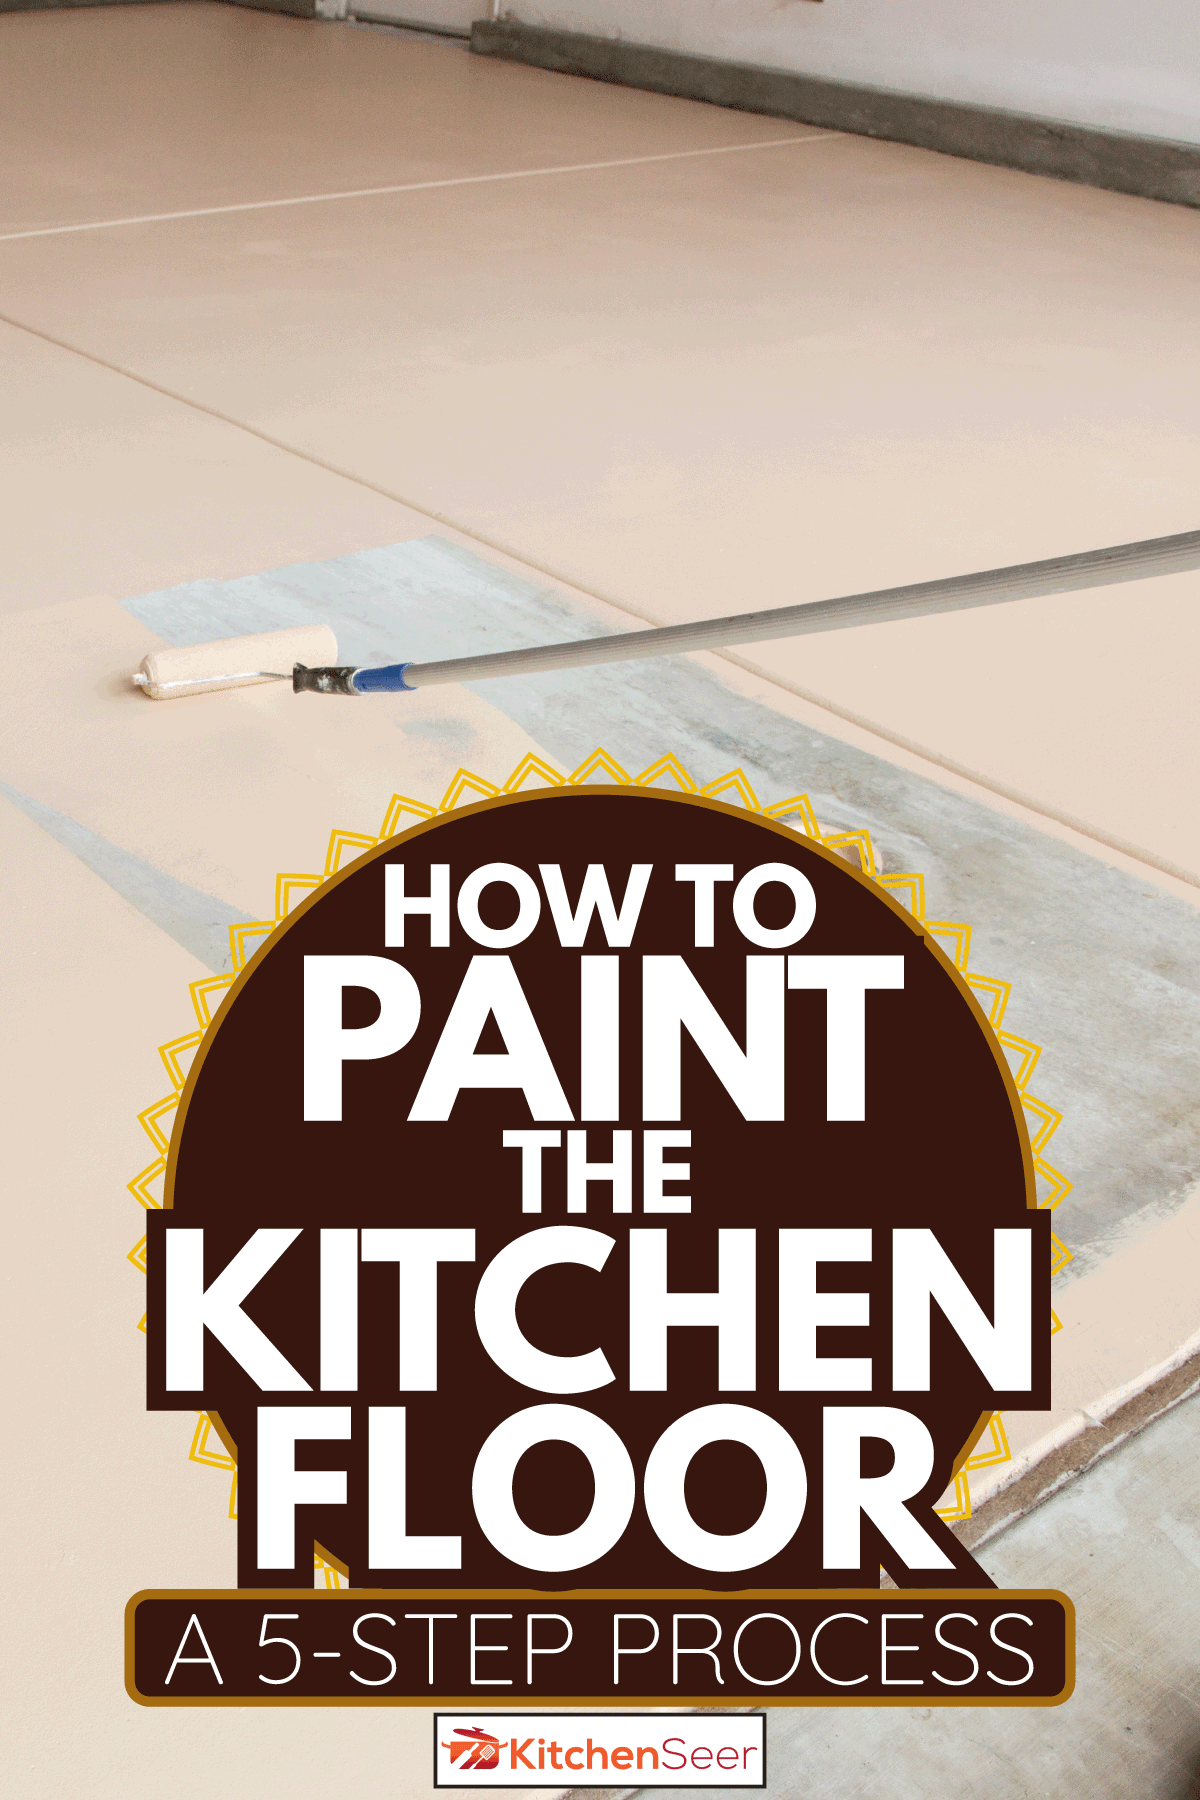 worker using a paint roller with extension to paint the kitchen floor. How To Paint The Kitchen Floor [A 5-Step Process]